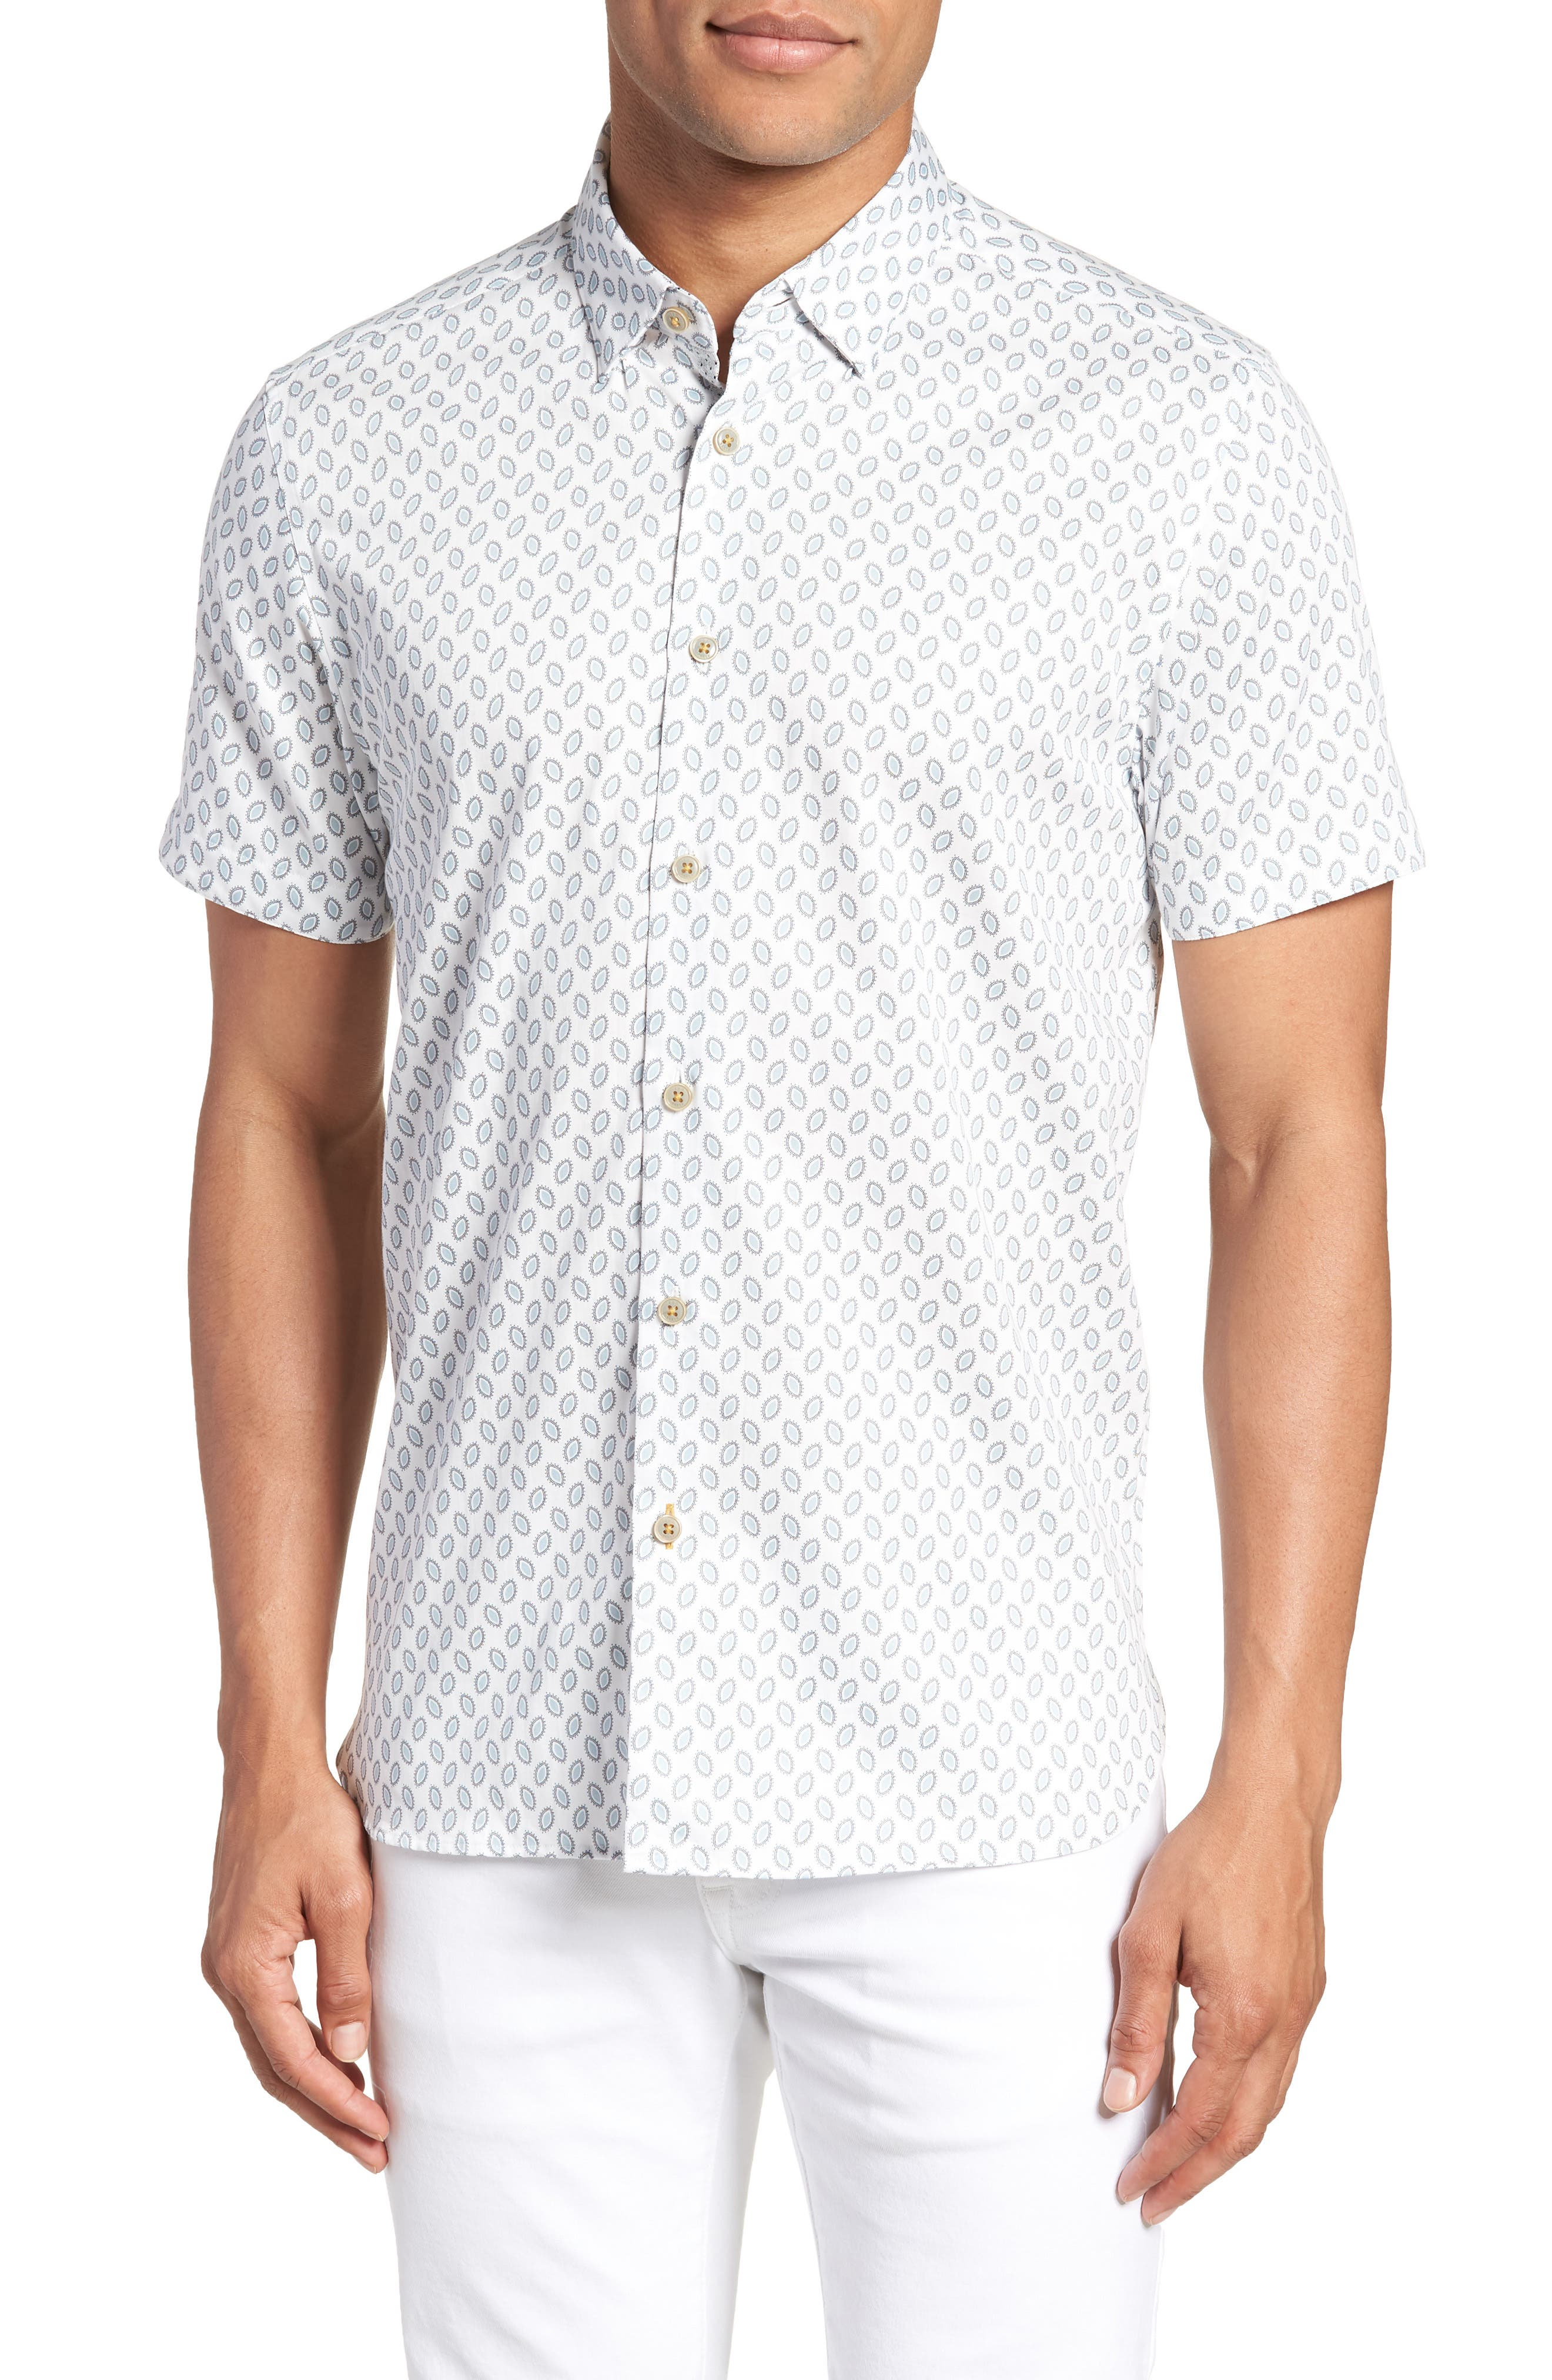 Newfone Trim Fit Chambray Sport Shirt,                         Main,                         color, White